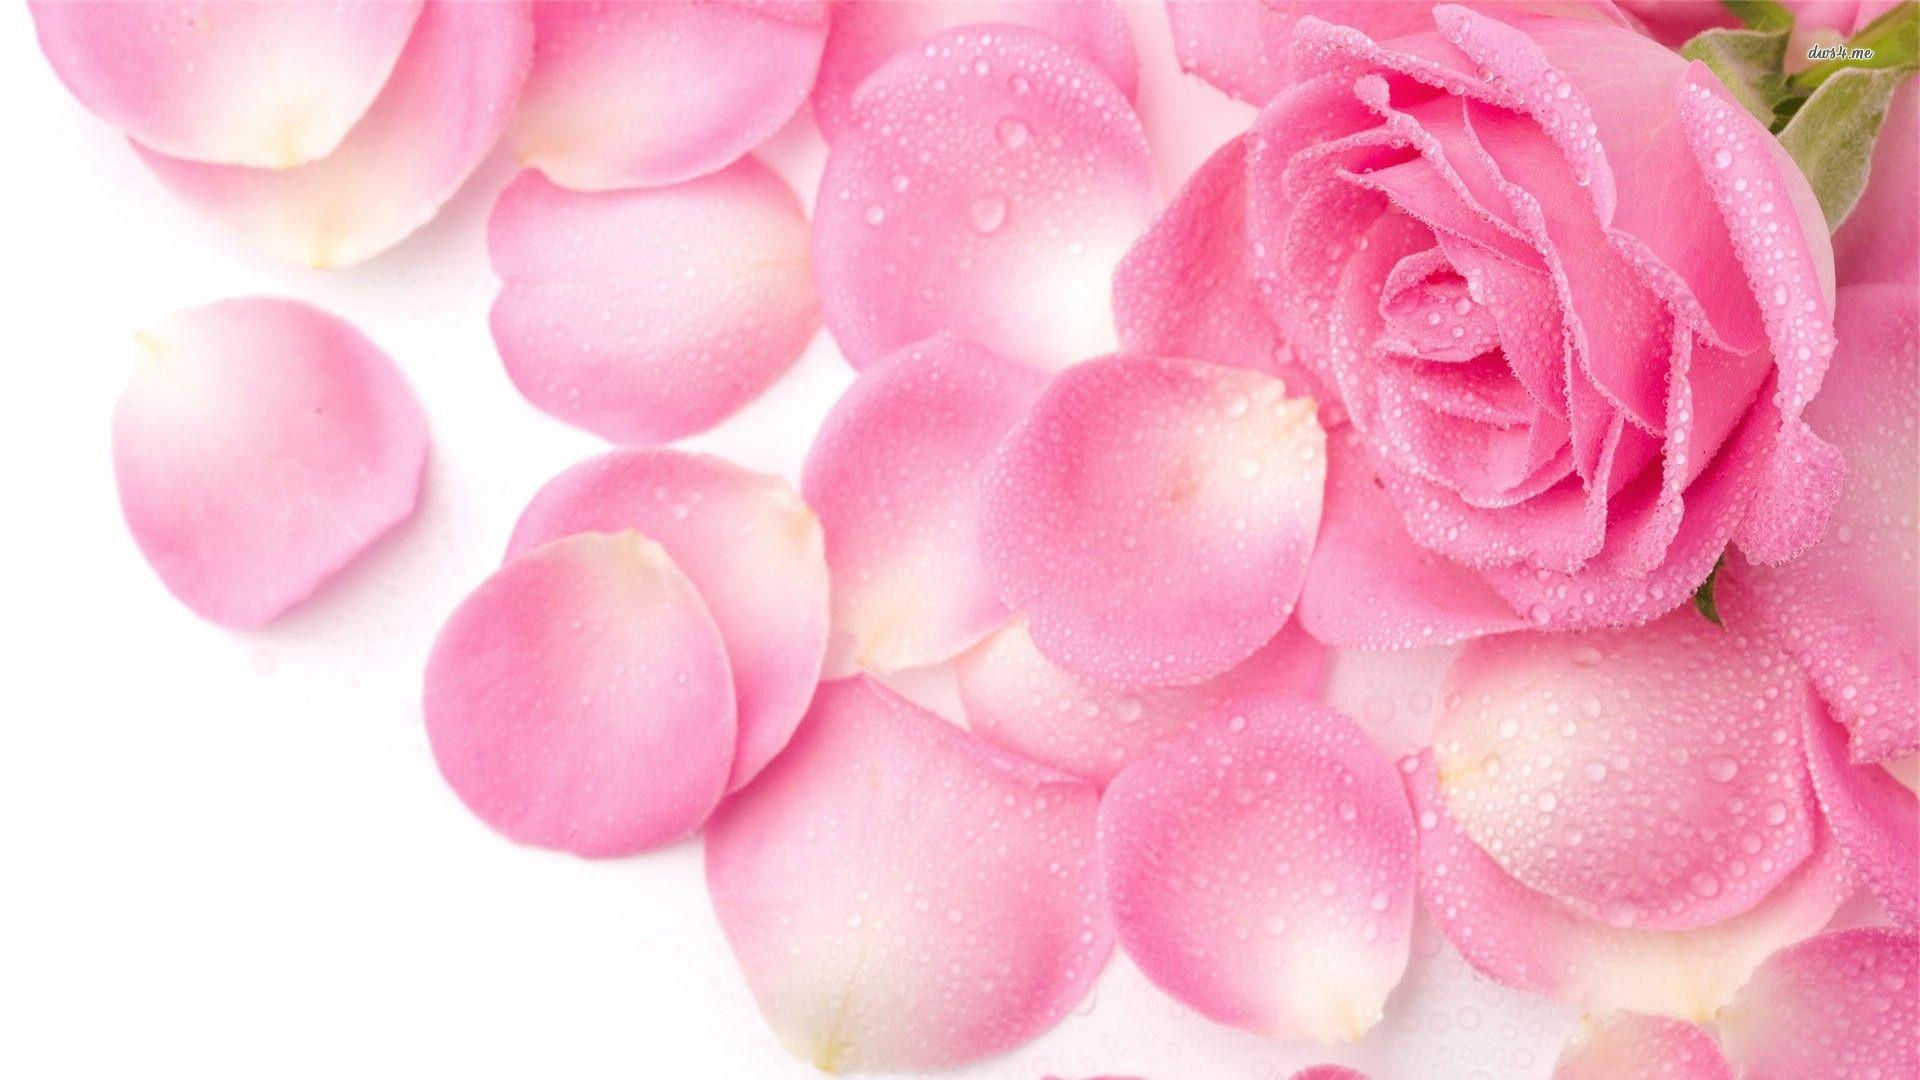 Pink Rose Wallpaper Widescreen for Background Wallpaper 1920x1080 px 199.47 KB